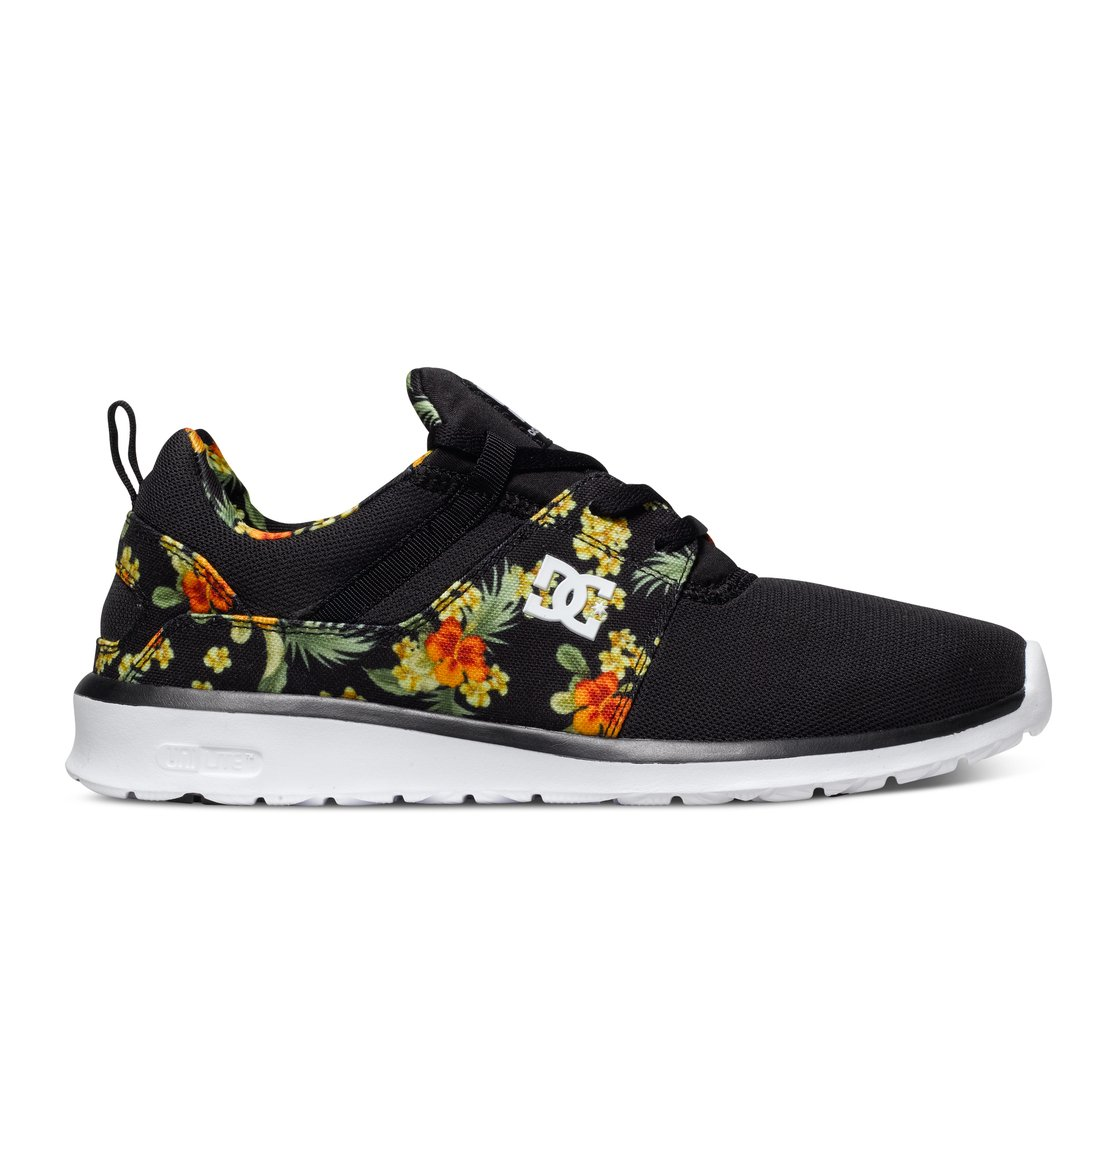 Heathrow SE - Dcshoes������ ������� ���� Heathrow SE �� DC Shoes. <br>��������������: ��� ����� ������������� ������ �� ������ ����, ���������� ��������, ������������ ������, ������� � �������� ������, ������ �������� � ������������ �������, ��������� ������ �����, ������������ �������, �������������� ���������� ������ � ������������ ��������, ����������� ���� �� ����� � ����, �������� ����������, ������� � ������� ��������, ���������� ��������� ���� ��� ��������� ������������� � �������� ������ �����, ���������� IMEVA UniLite ��� ������ ��������� � ��������, �������������� ������� OrthoLite, ��������� ������� �� �������. <br>������: ����: �������� / ���������: �������� / �������: ������� EVA.<br>